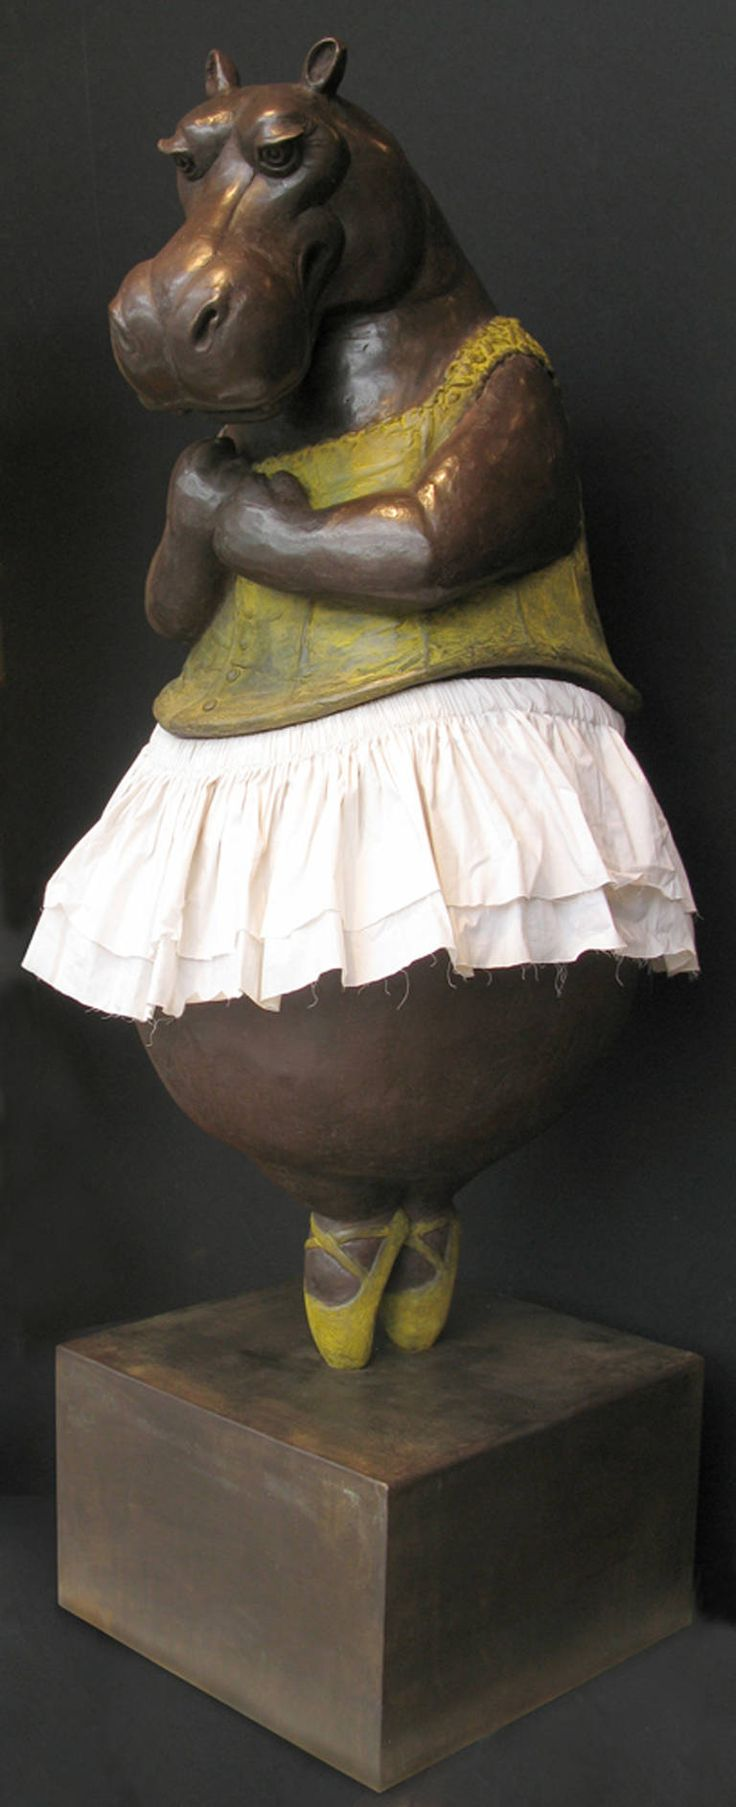 Hippopotamus Ballerina II, 2014   From a unique collection of figurative sculptures at https://www.1stdibs.com/art/sculptures/figurative-sculptures/